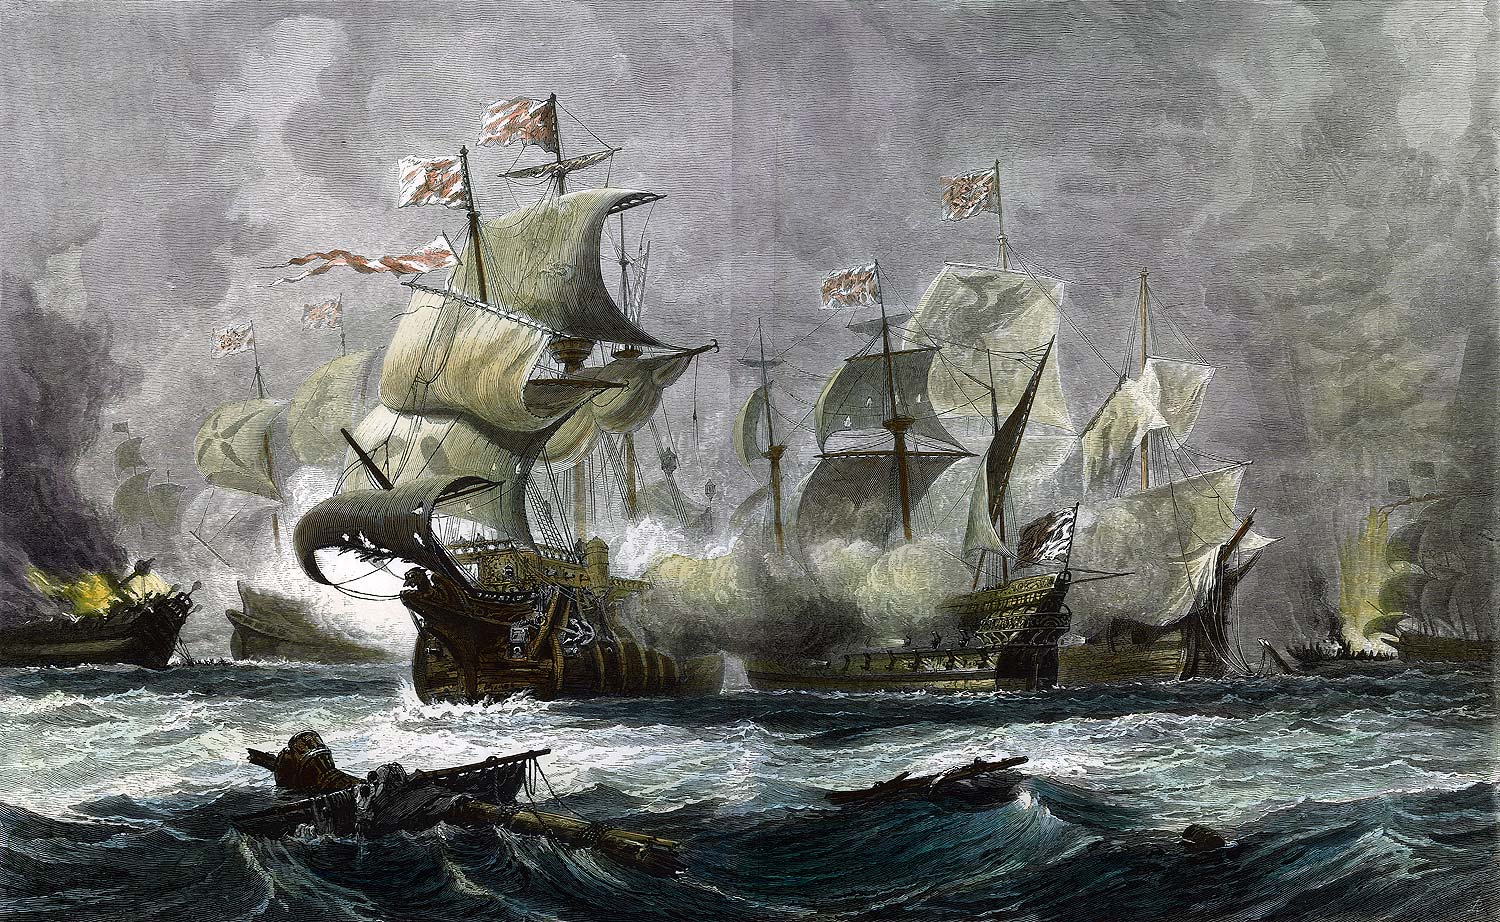 the battle of the spanish armada The outcome of the battle made spain less powerful then before the defeat of the spanish armada saved england form invasion, and the dutch republic form extinction (the encyclopedia britannica).